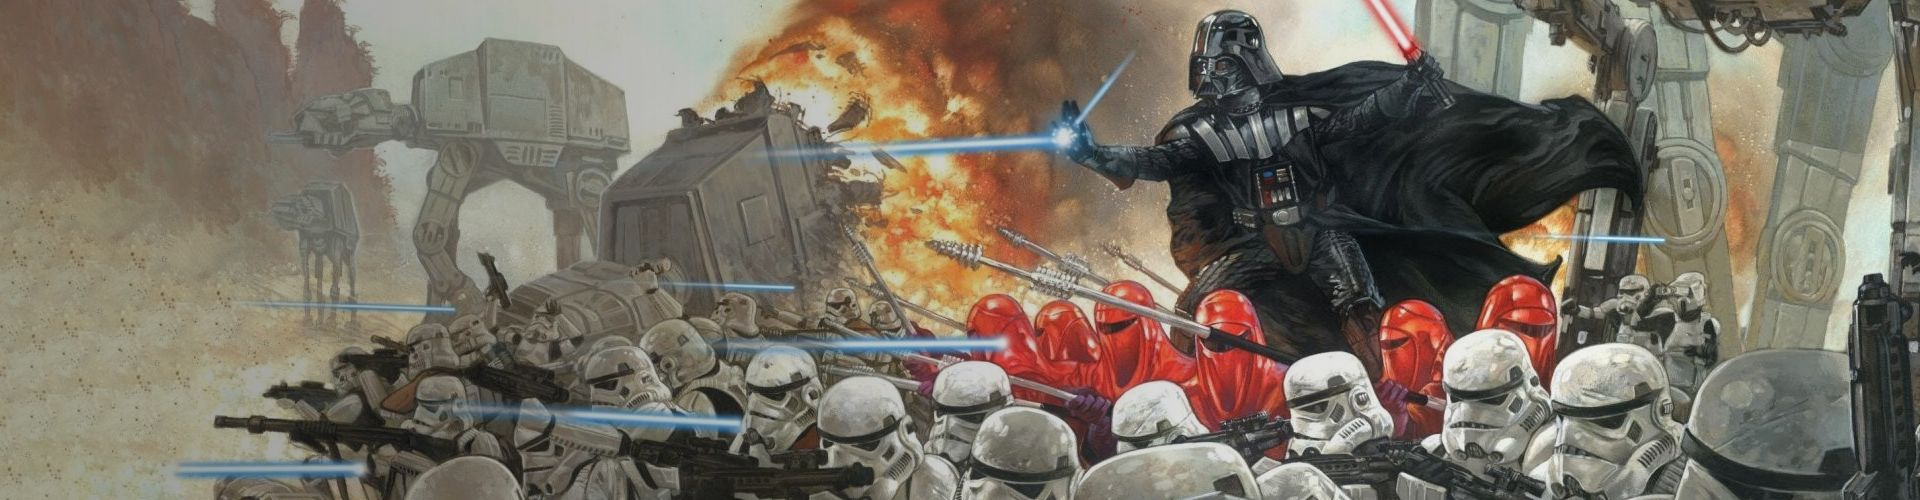 A picture showing Darth Vader leading his army into battle.